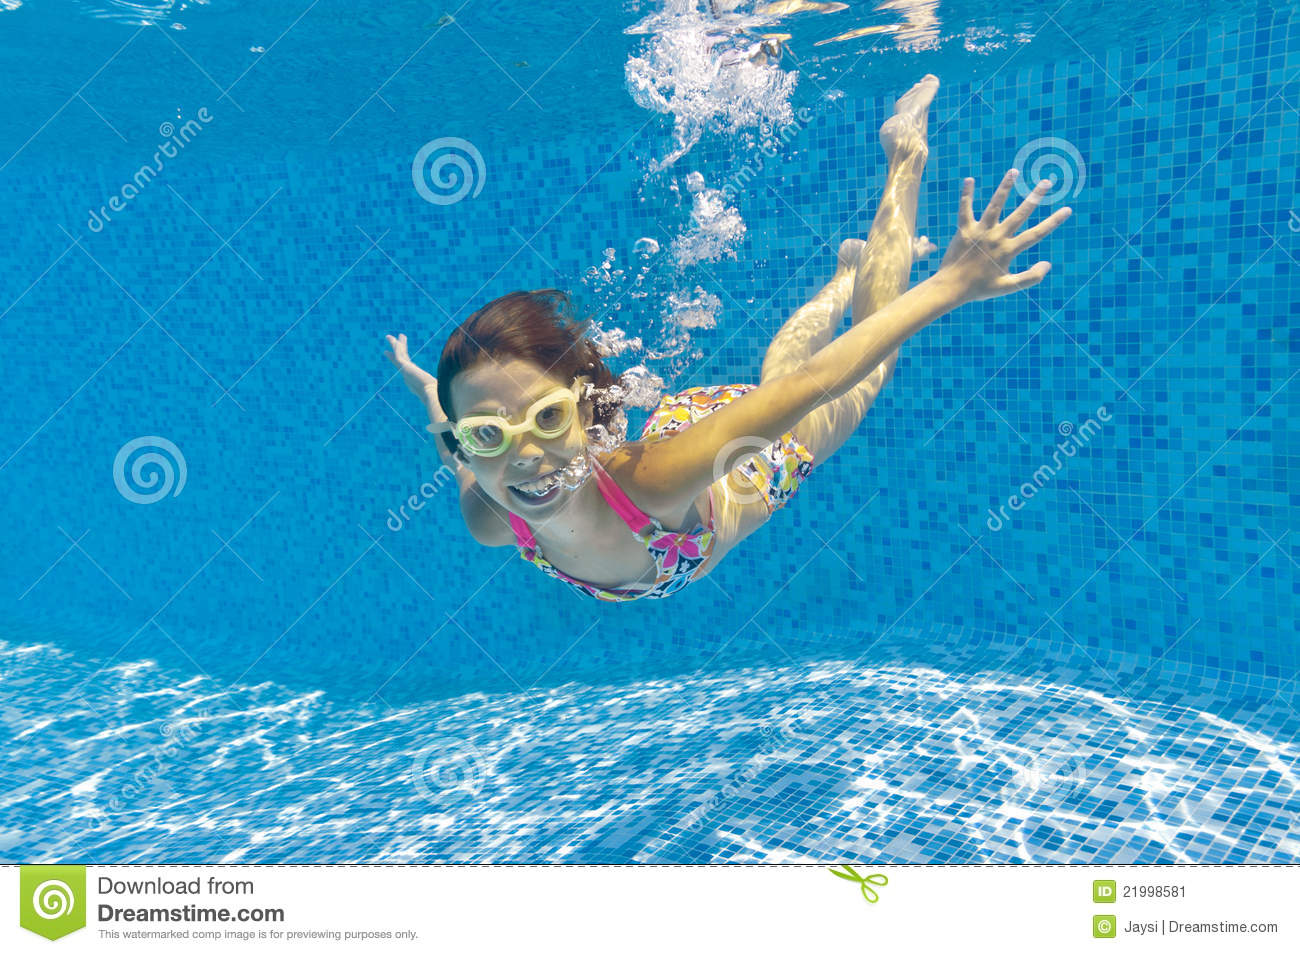 Kids Swimming Underwater happy smiling underwater kid swimming pool stock photos, images